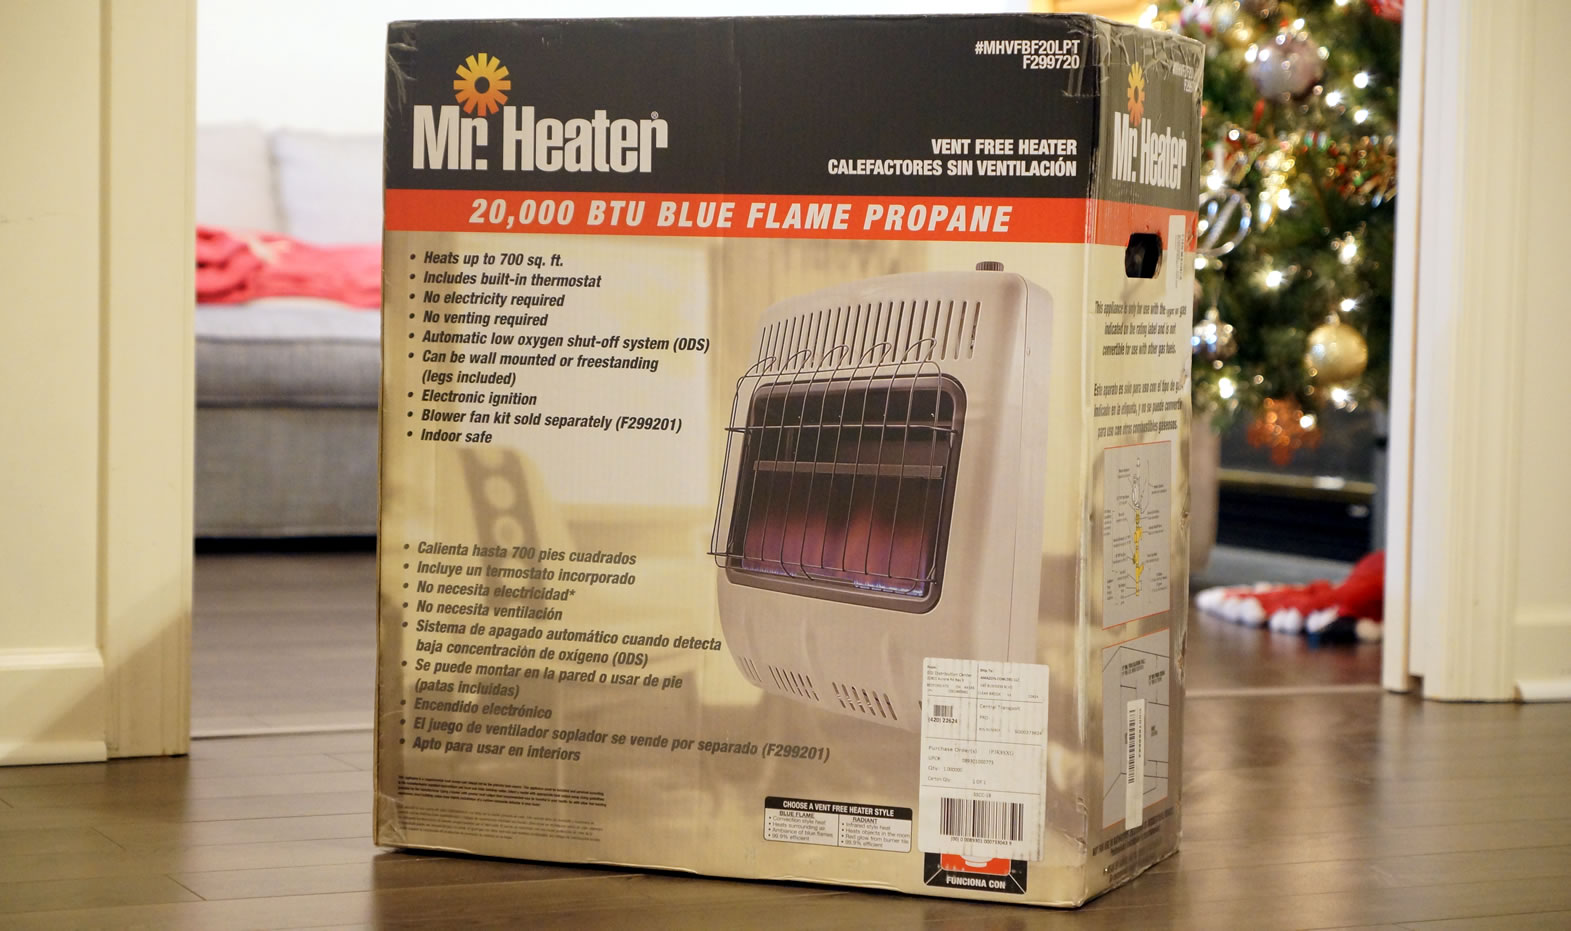 Vent Free Liquid Propane Heater For Garage Cheaper To Use Than Electric Heaters